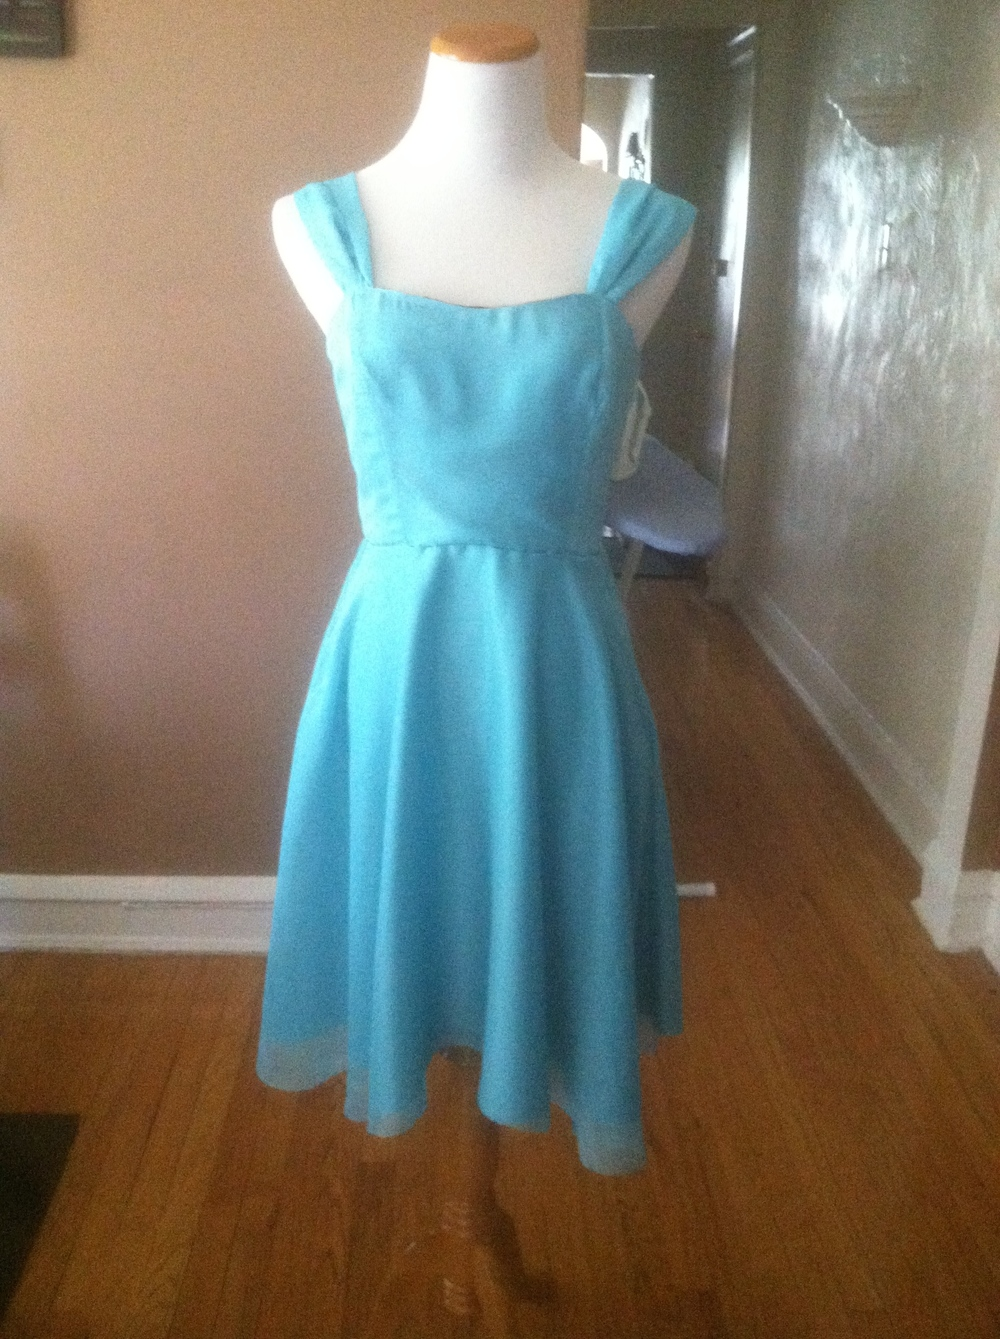 Aqua bridesmaid's dress 2